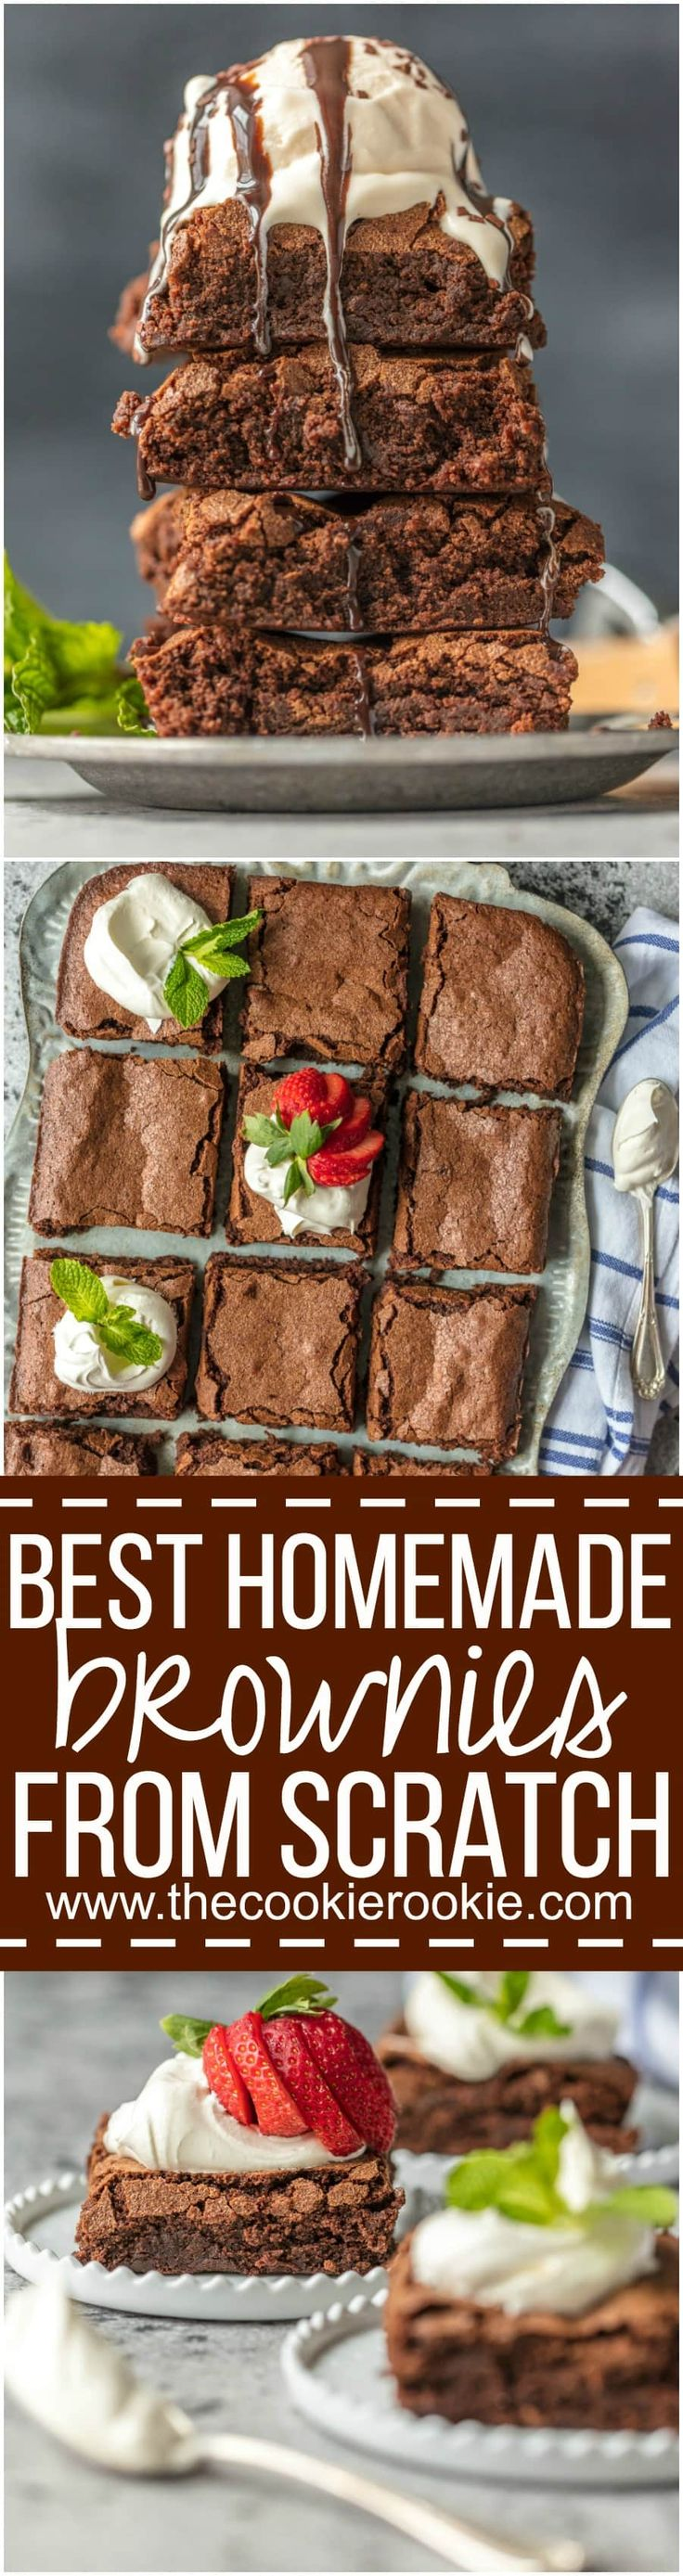 These BEST HOMEMADE BROWNIES FROM SCRATCH will be your favorite brownie recipe EVER! Super dense, moist, rich, and perfect! via @beckygallhardin